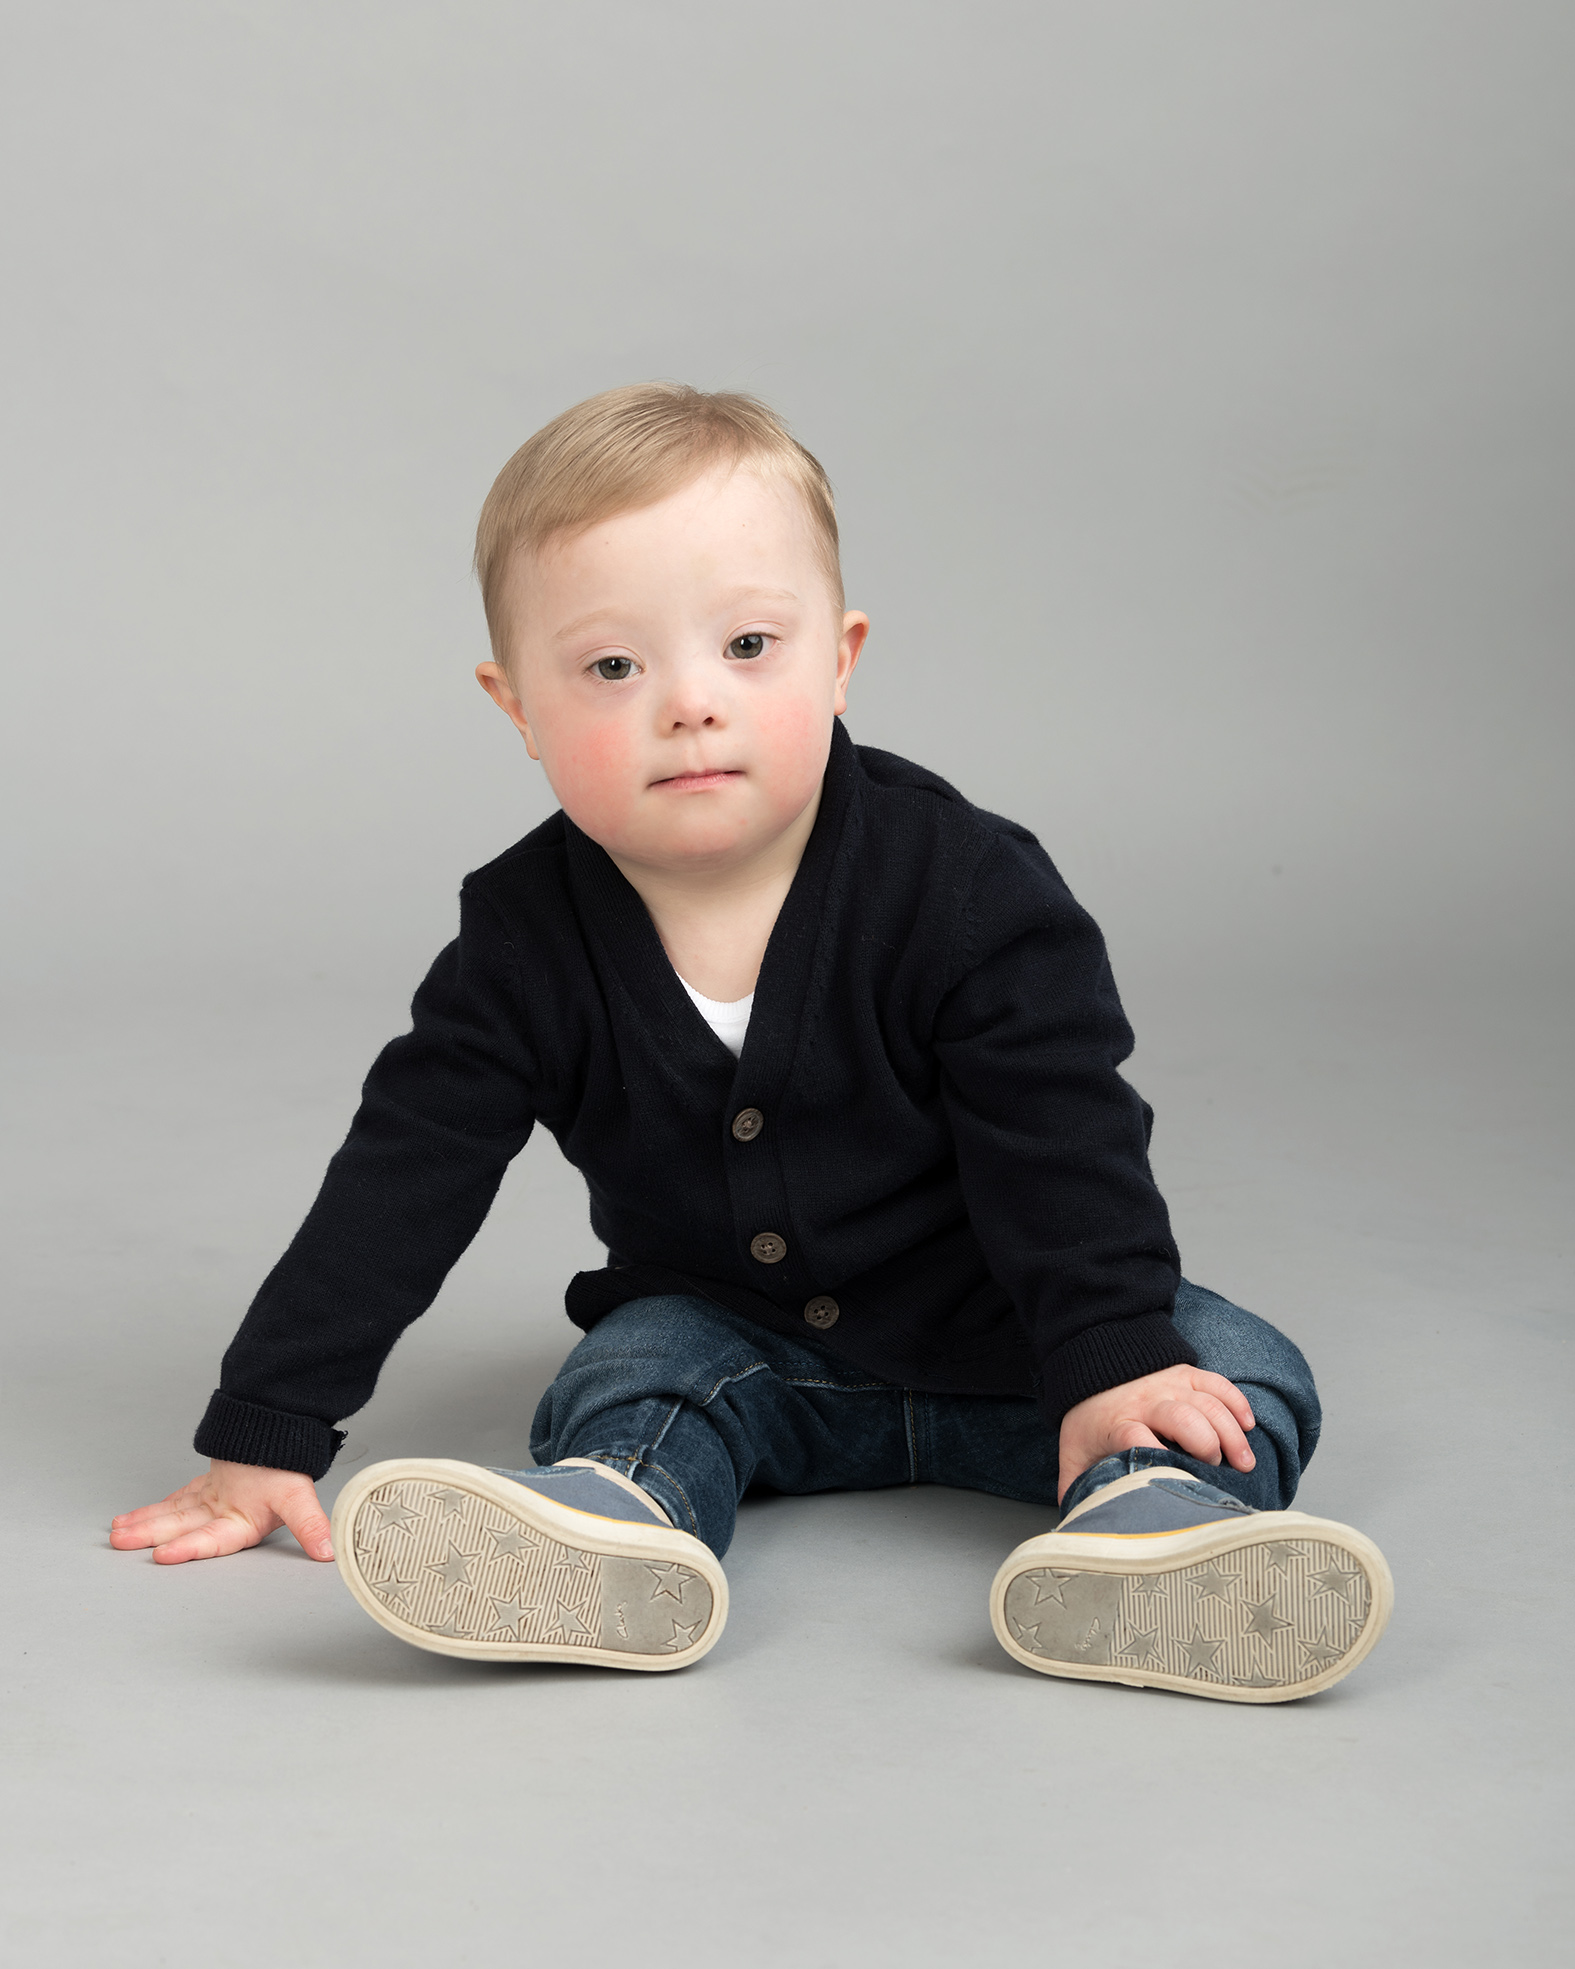 Gwilym, Down Syndrome, Zebedee Management, disabled, model agency, disability, baby 01